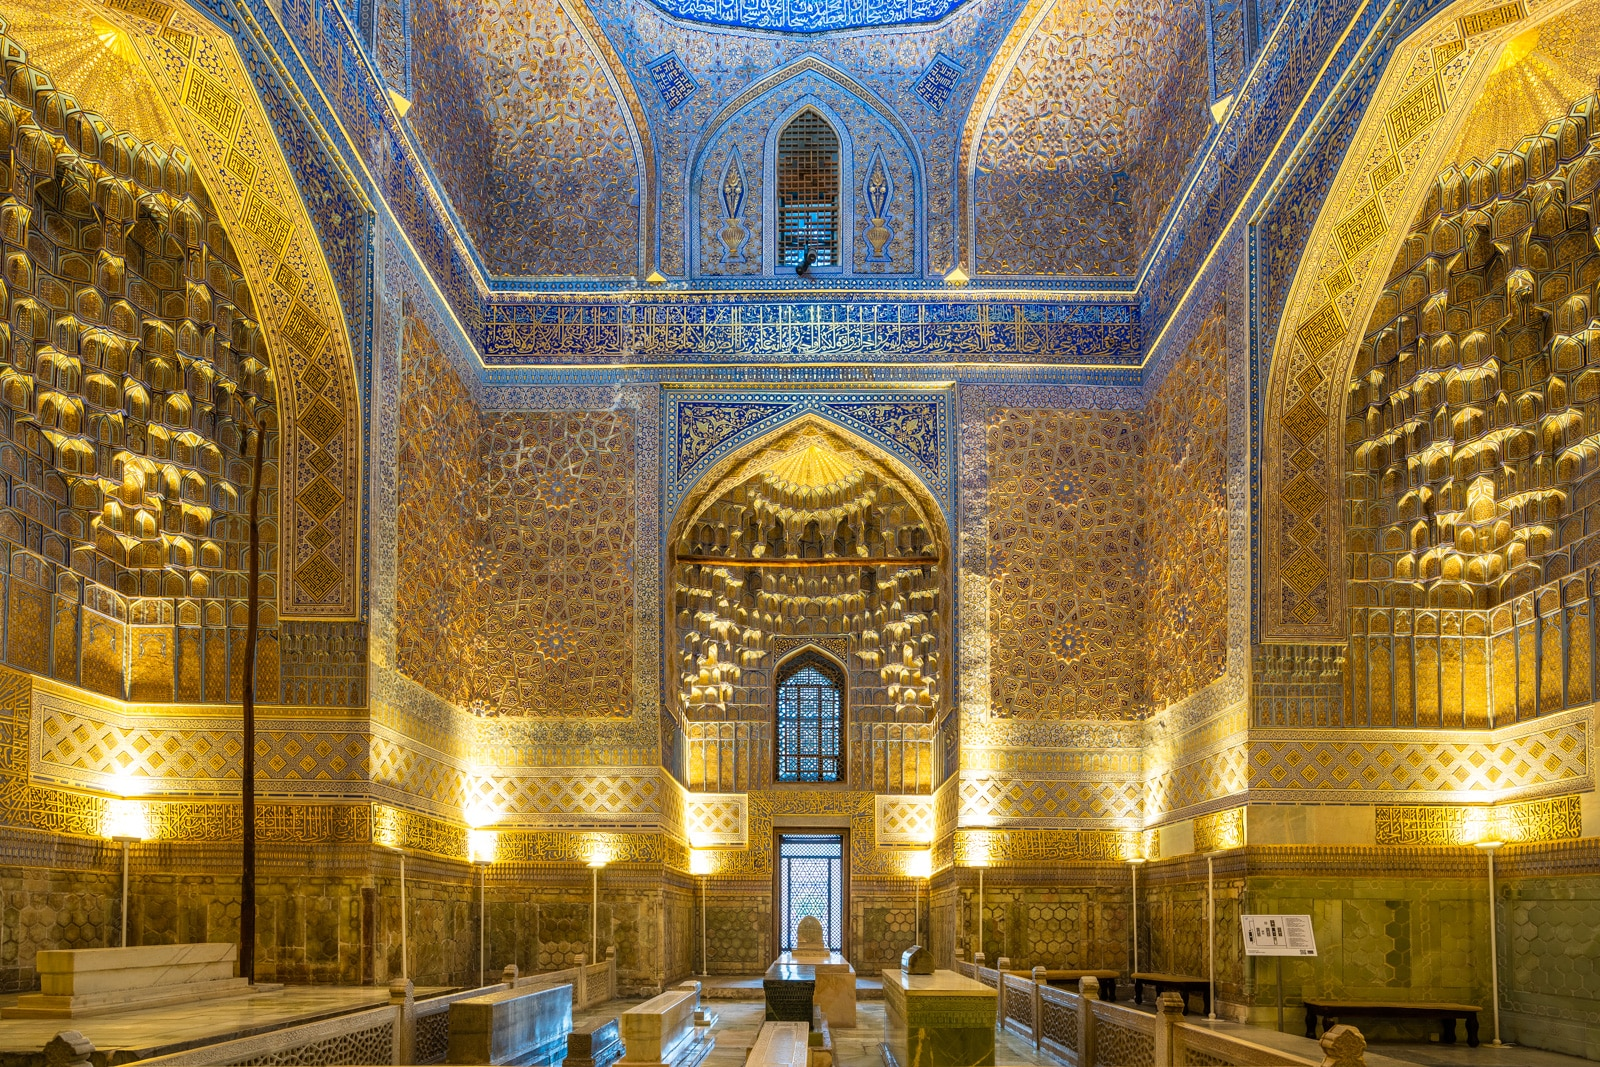 Two week Uzbekistan itinerary - Lost with Purpose travel blog